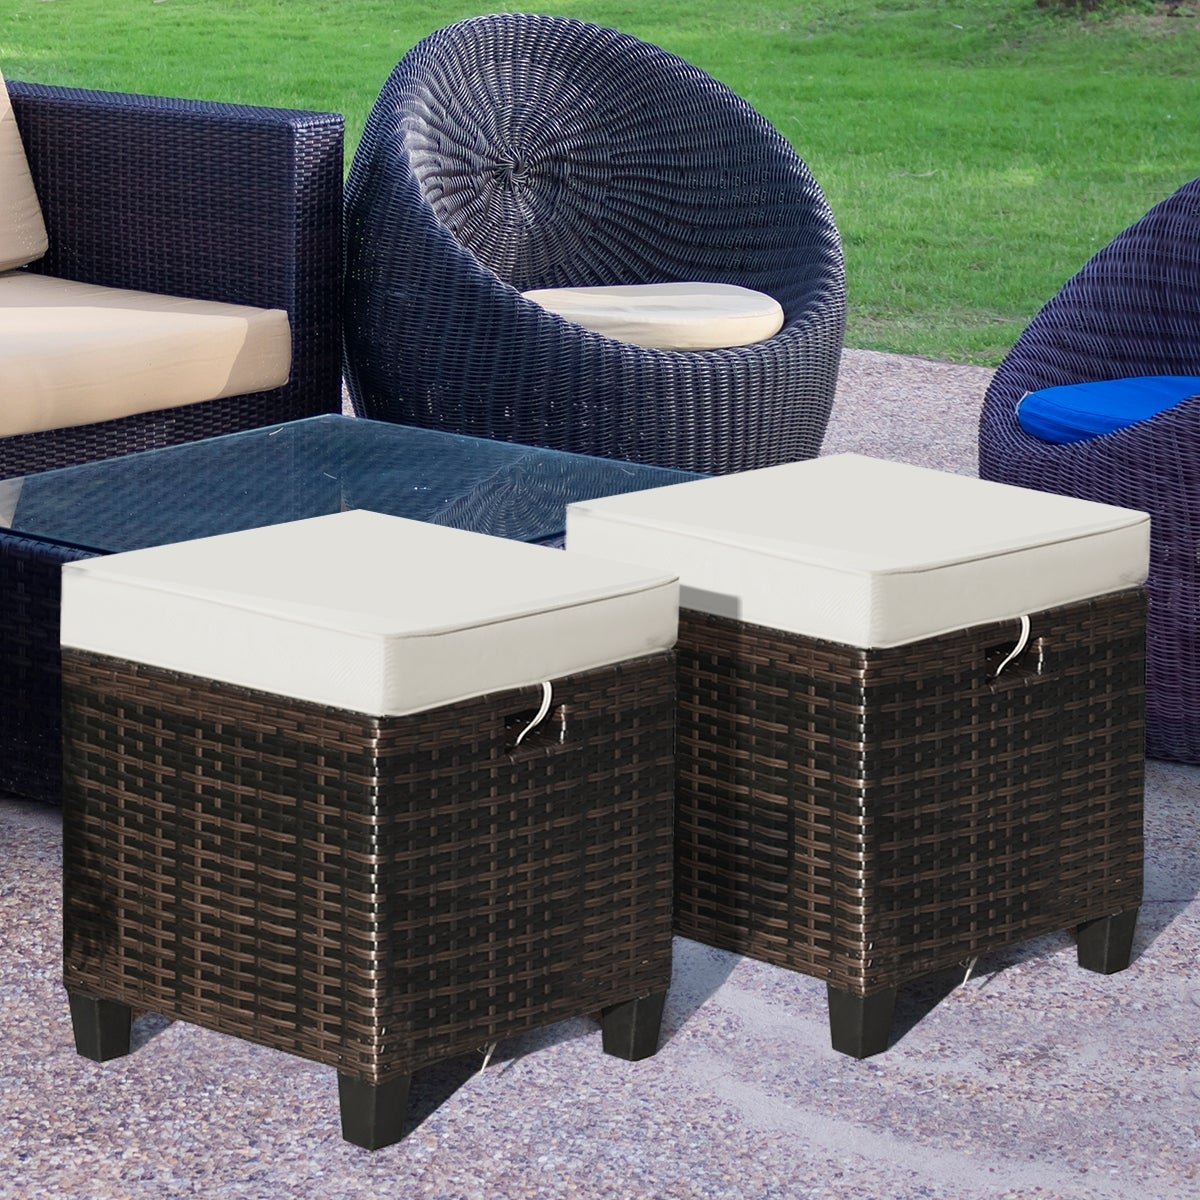 Costway 2pcs Patio Rattan Ottoman Cushioned Seat Foot Rest Coffee On Sale Overstock 30243915